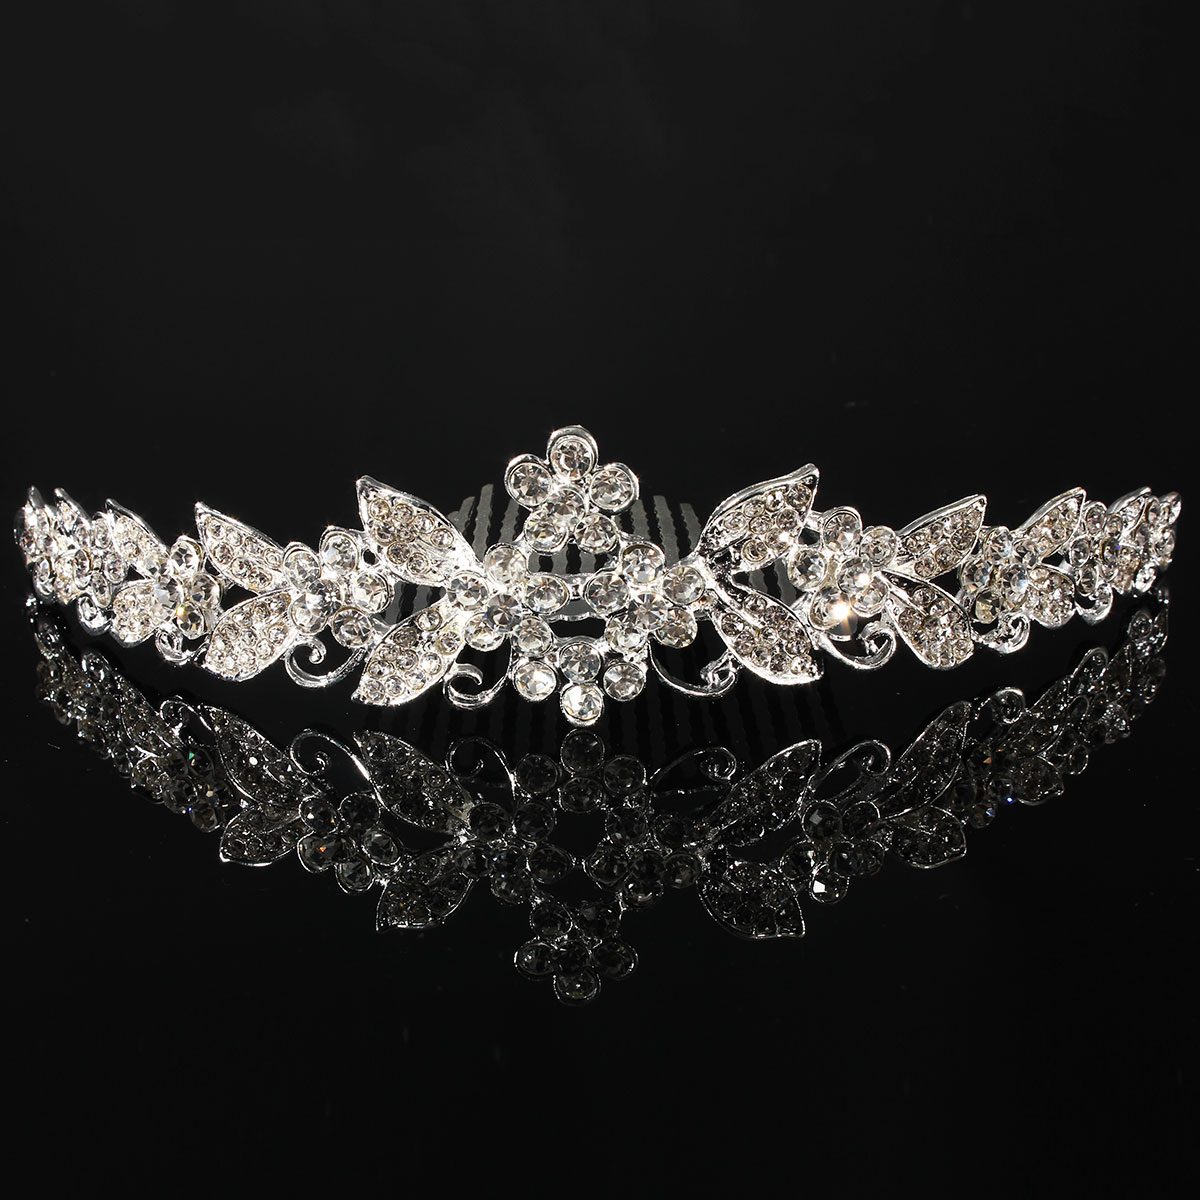 Bride Flower Leaf Rhinestone Crystal Headpiece Bridal Wedding Crown Tiara Hair Band With Comb